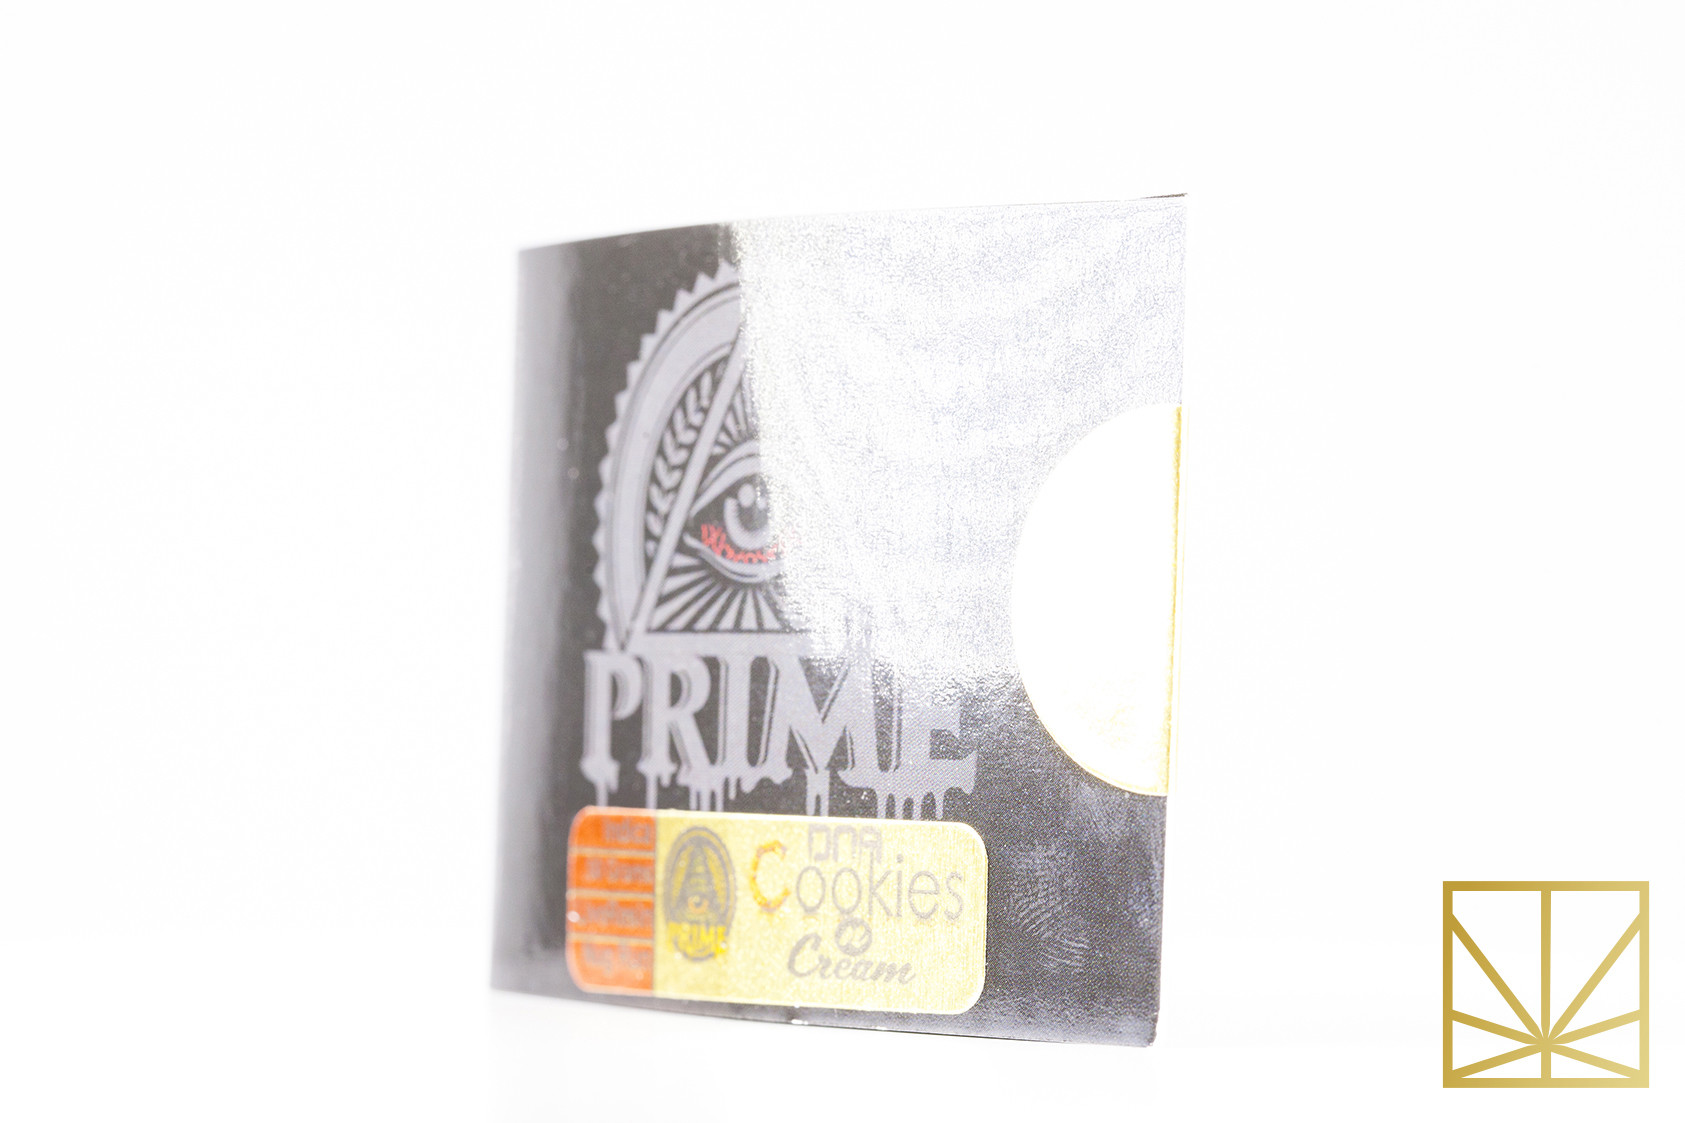 Prime Extractions Cookies n Cream Wax